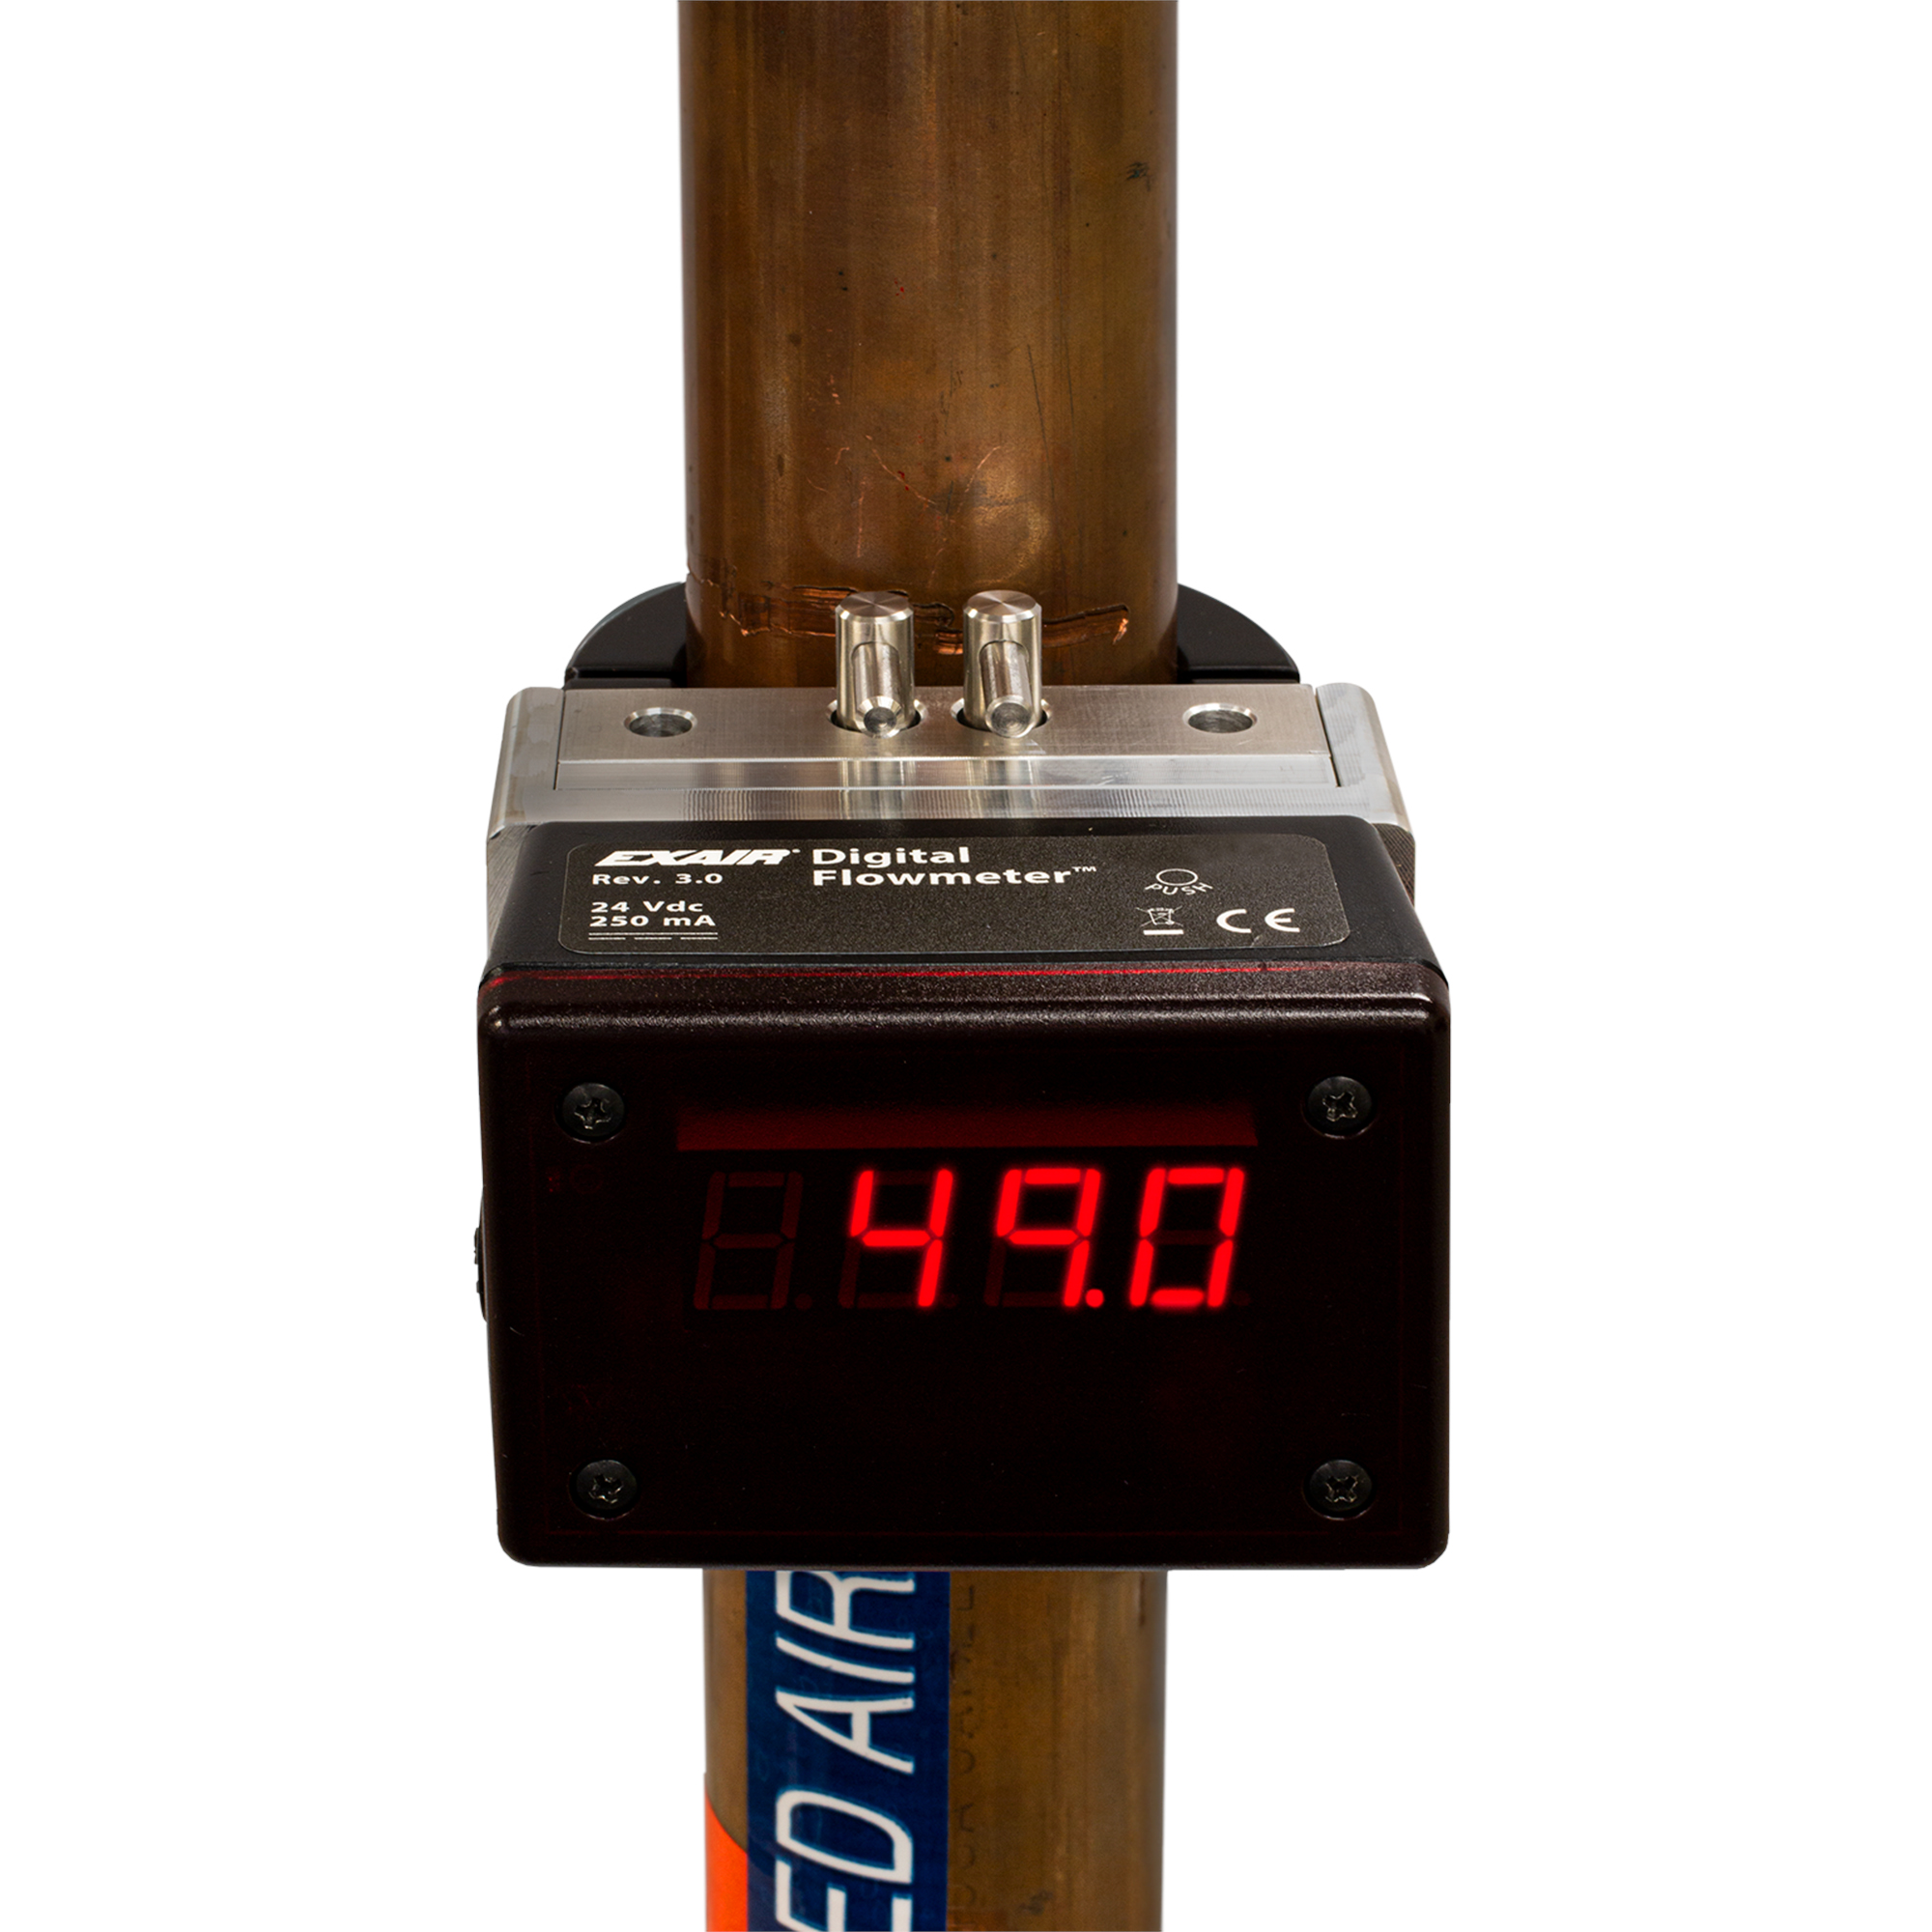 EXAIR's Hot Tap Digital Flowmeter allows for installation under pressure.